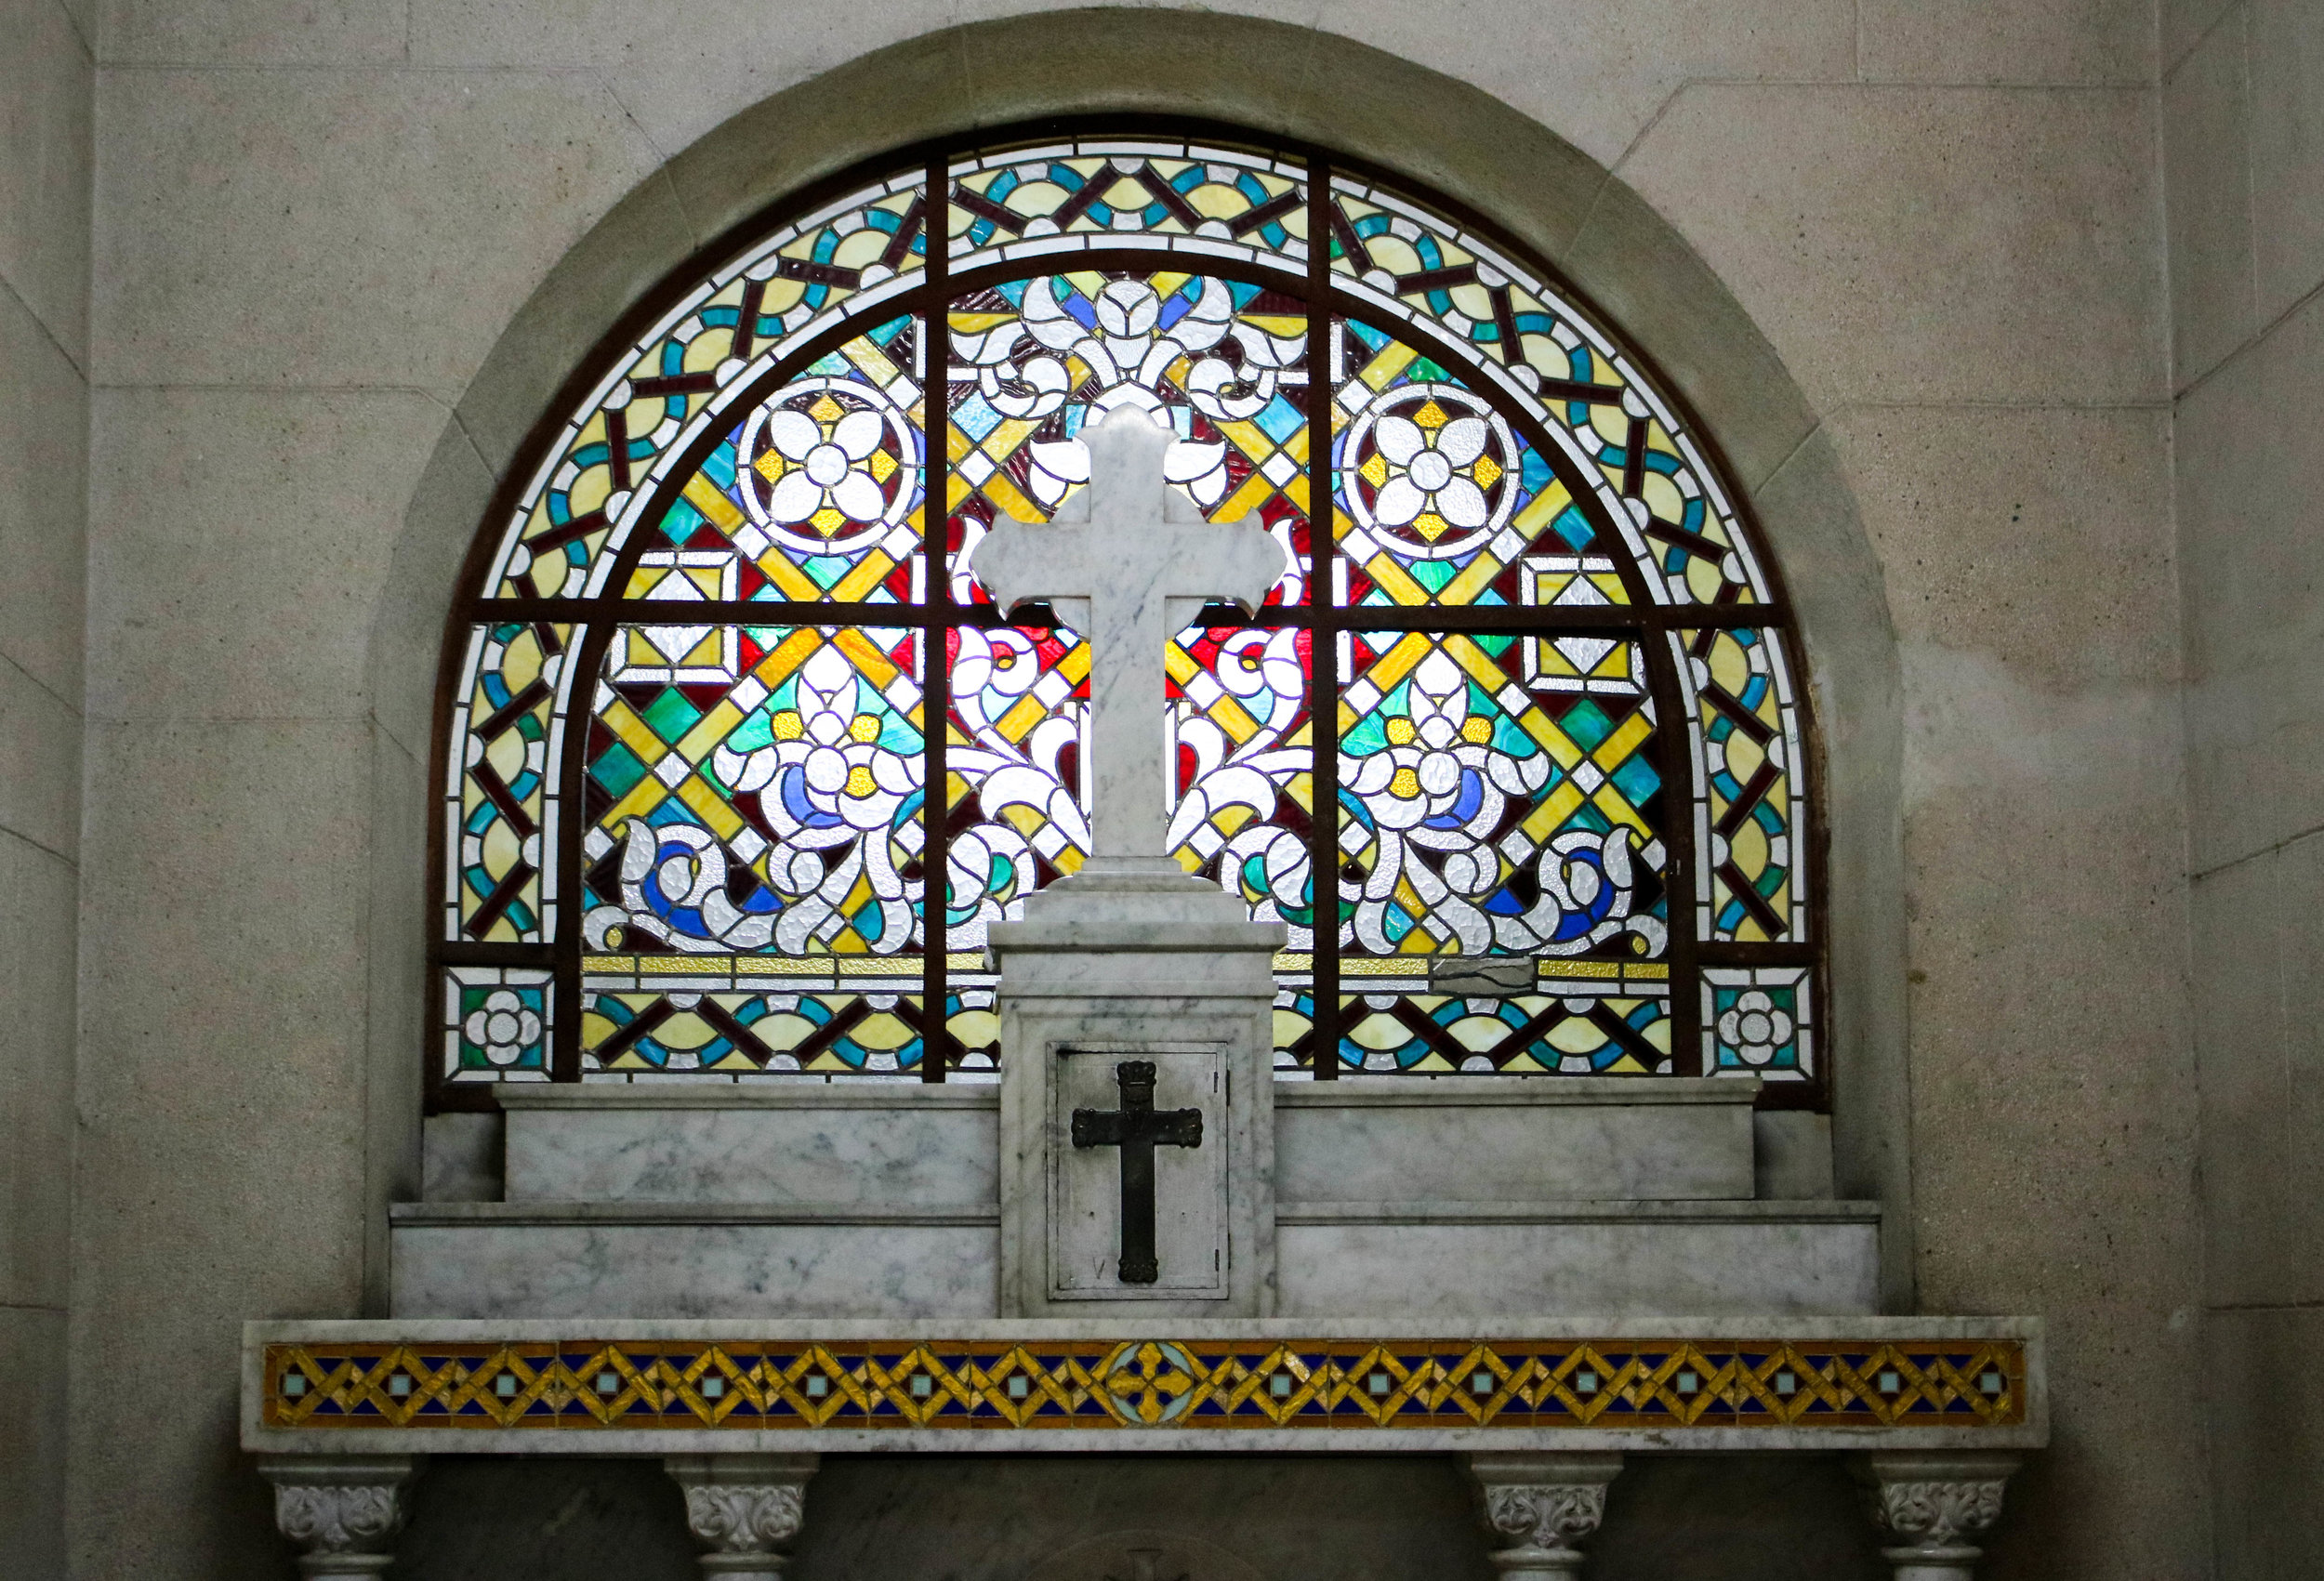 Stained Glass Inside a Church in Lima, Peru